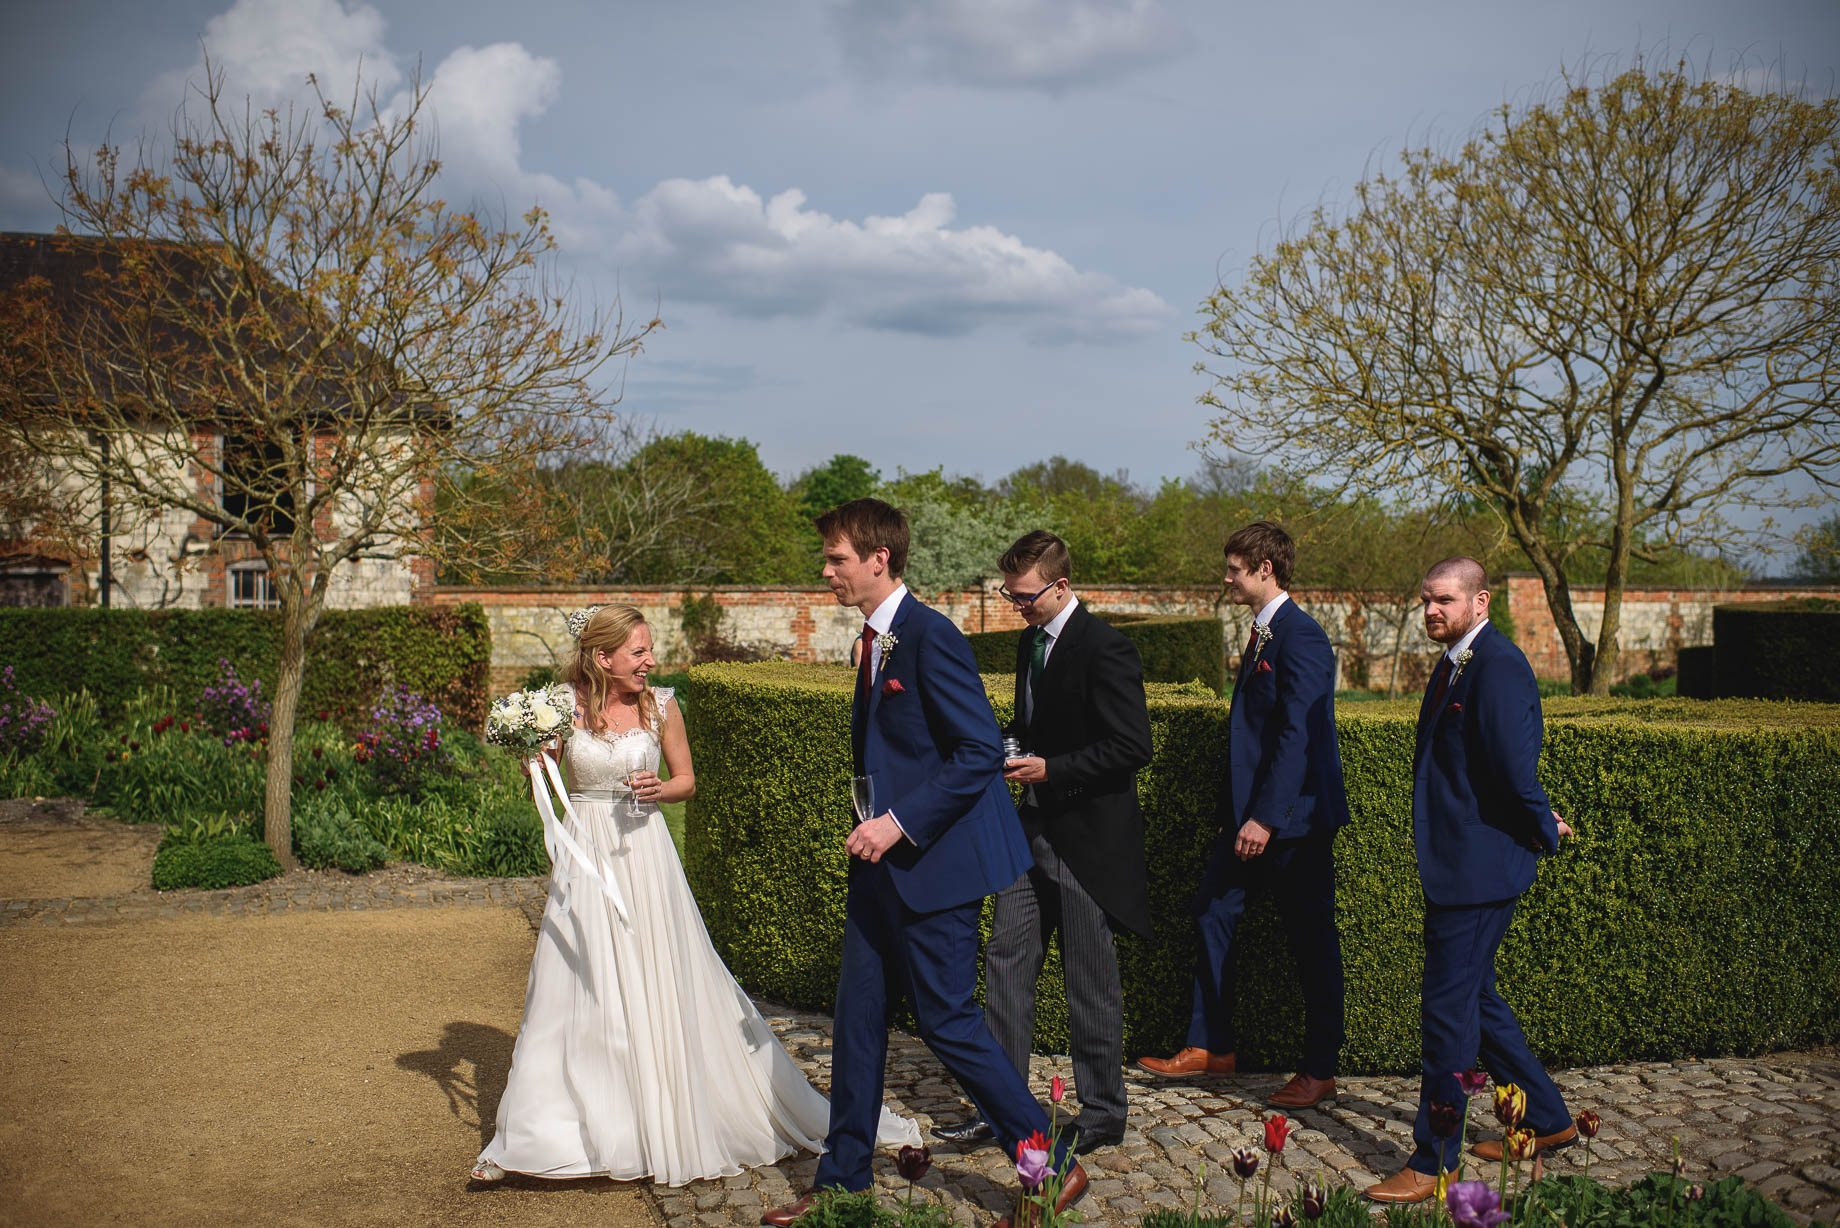 Bury Court Barn wedding photography by Guy Collier - Heather and Pat (111 of 170)